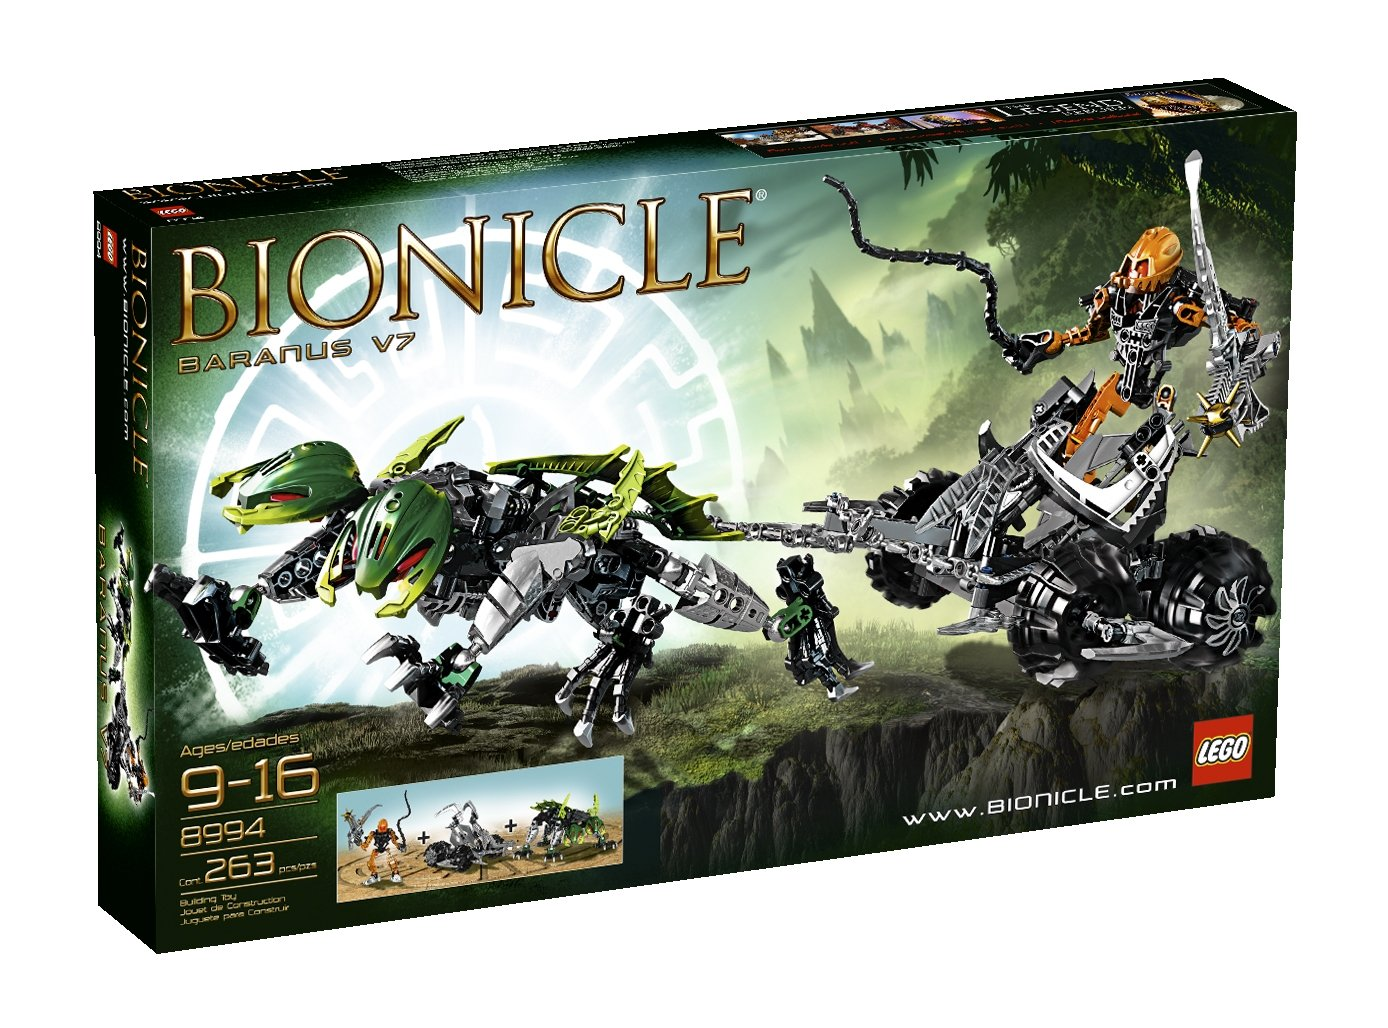 Top 15 Best Lego BIONICLE Sets Reviews in 2020 10